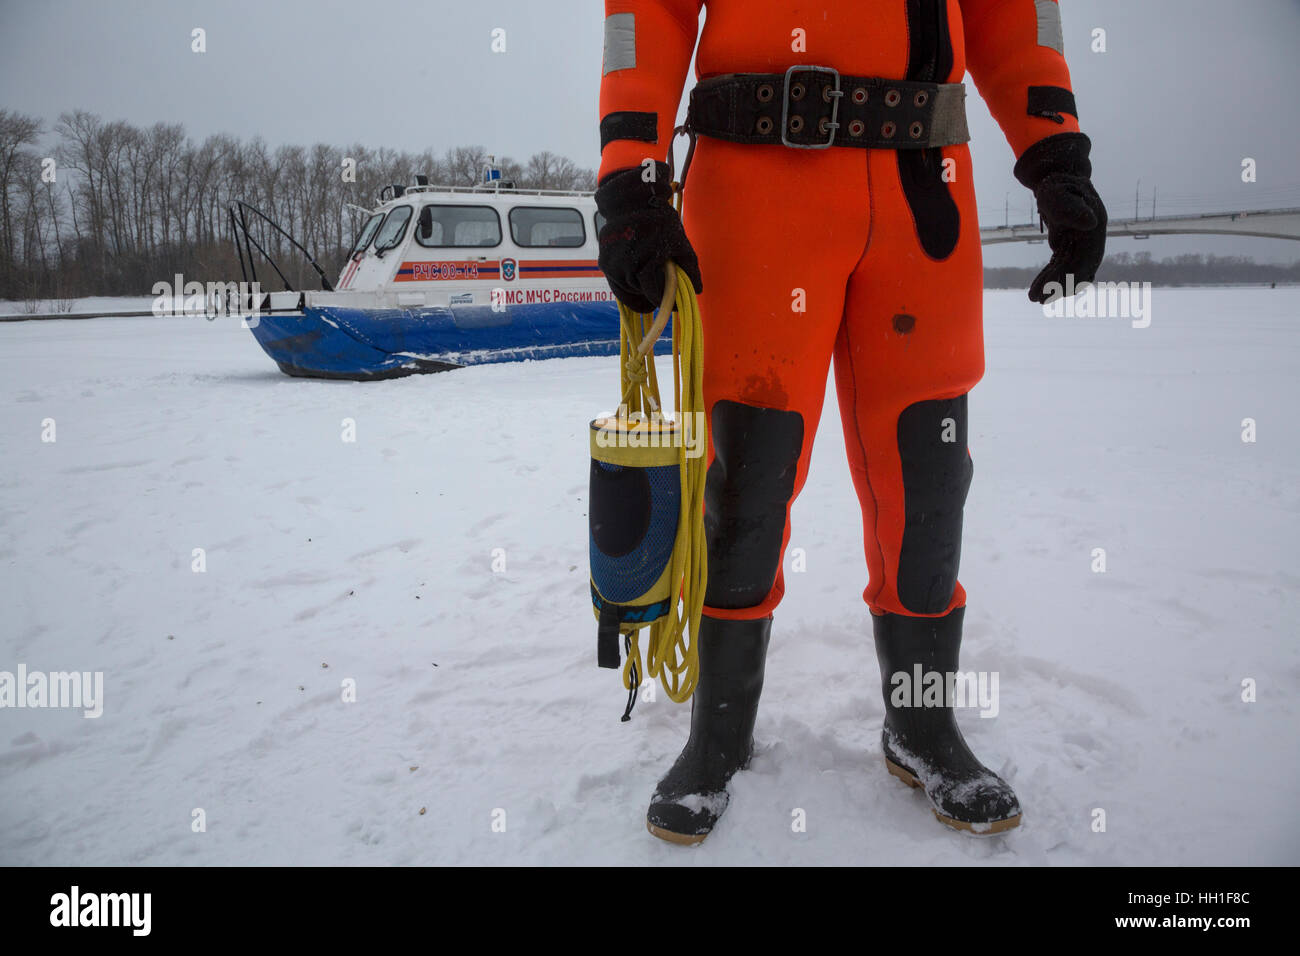 Diver-lifesaver of Russian Emergencies Ministry patrols the water of the river on winter season in Moscow, Russia - Stock Image